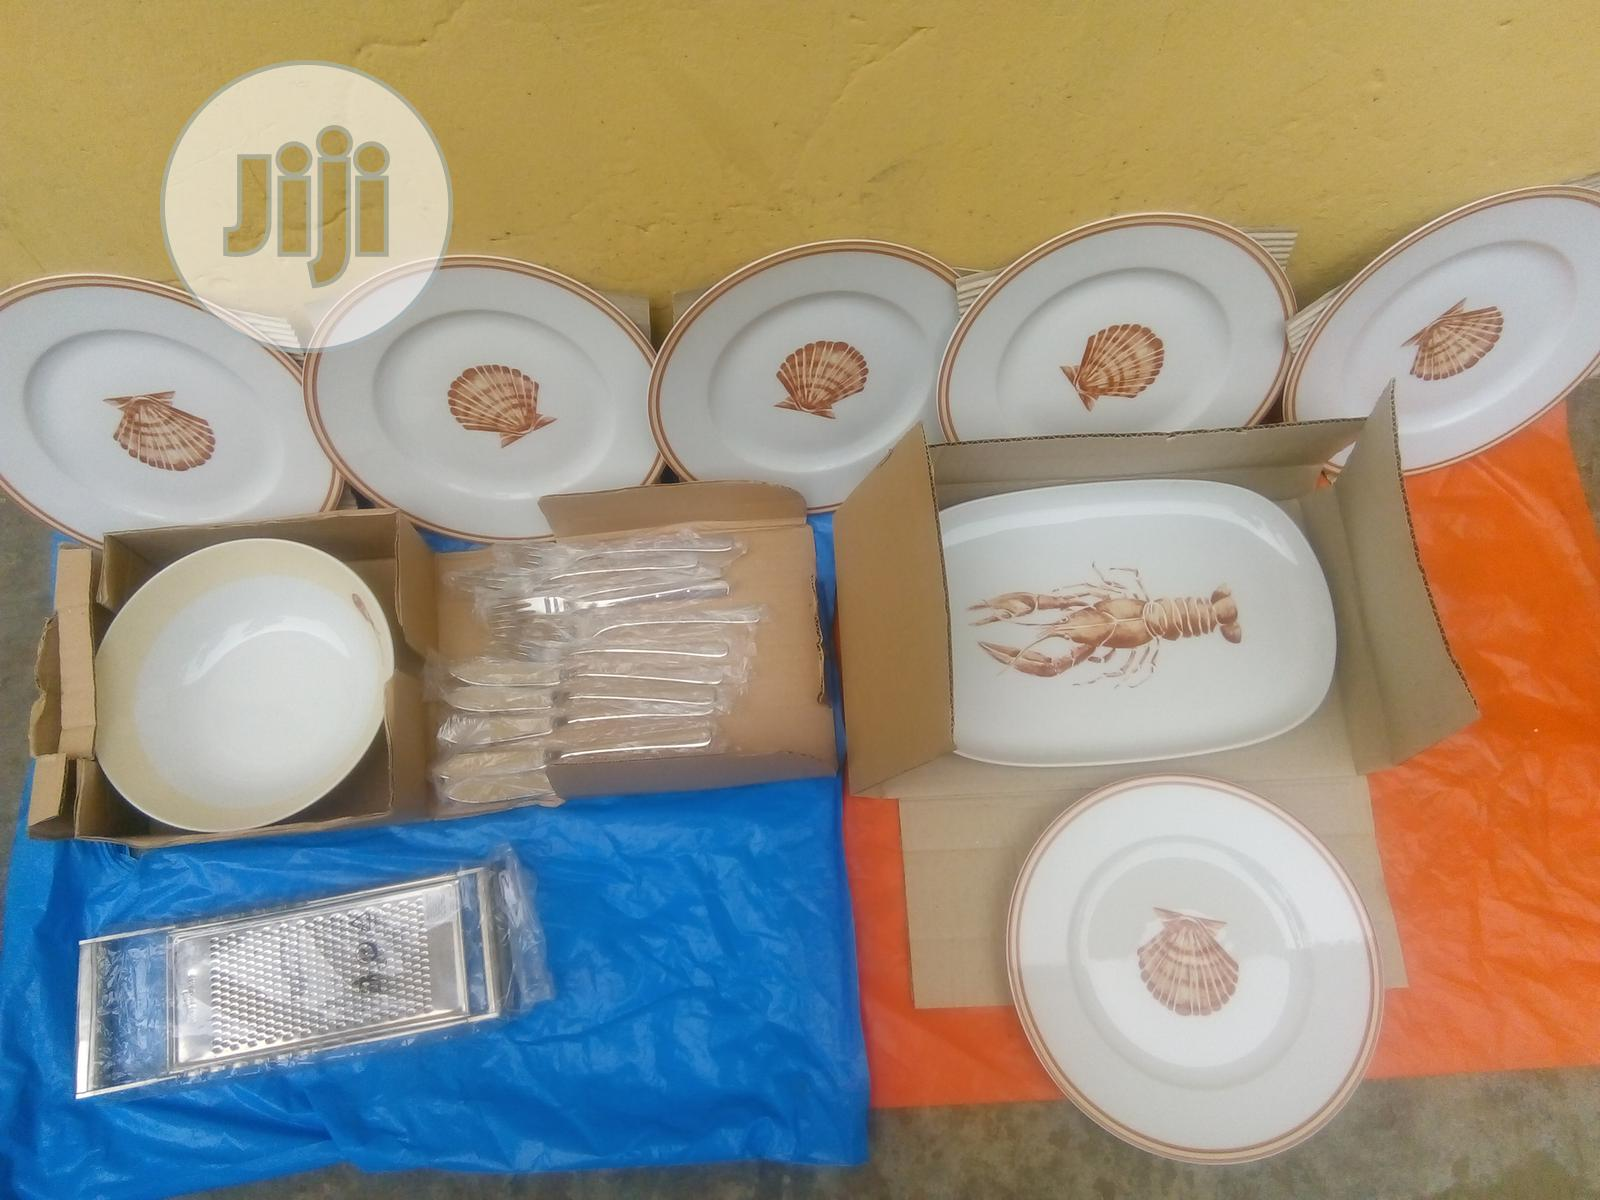 Set of 9 Breakable Plates for Dinning With Cutleries